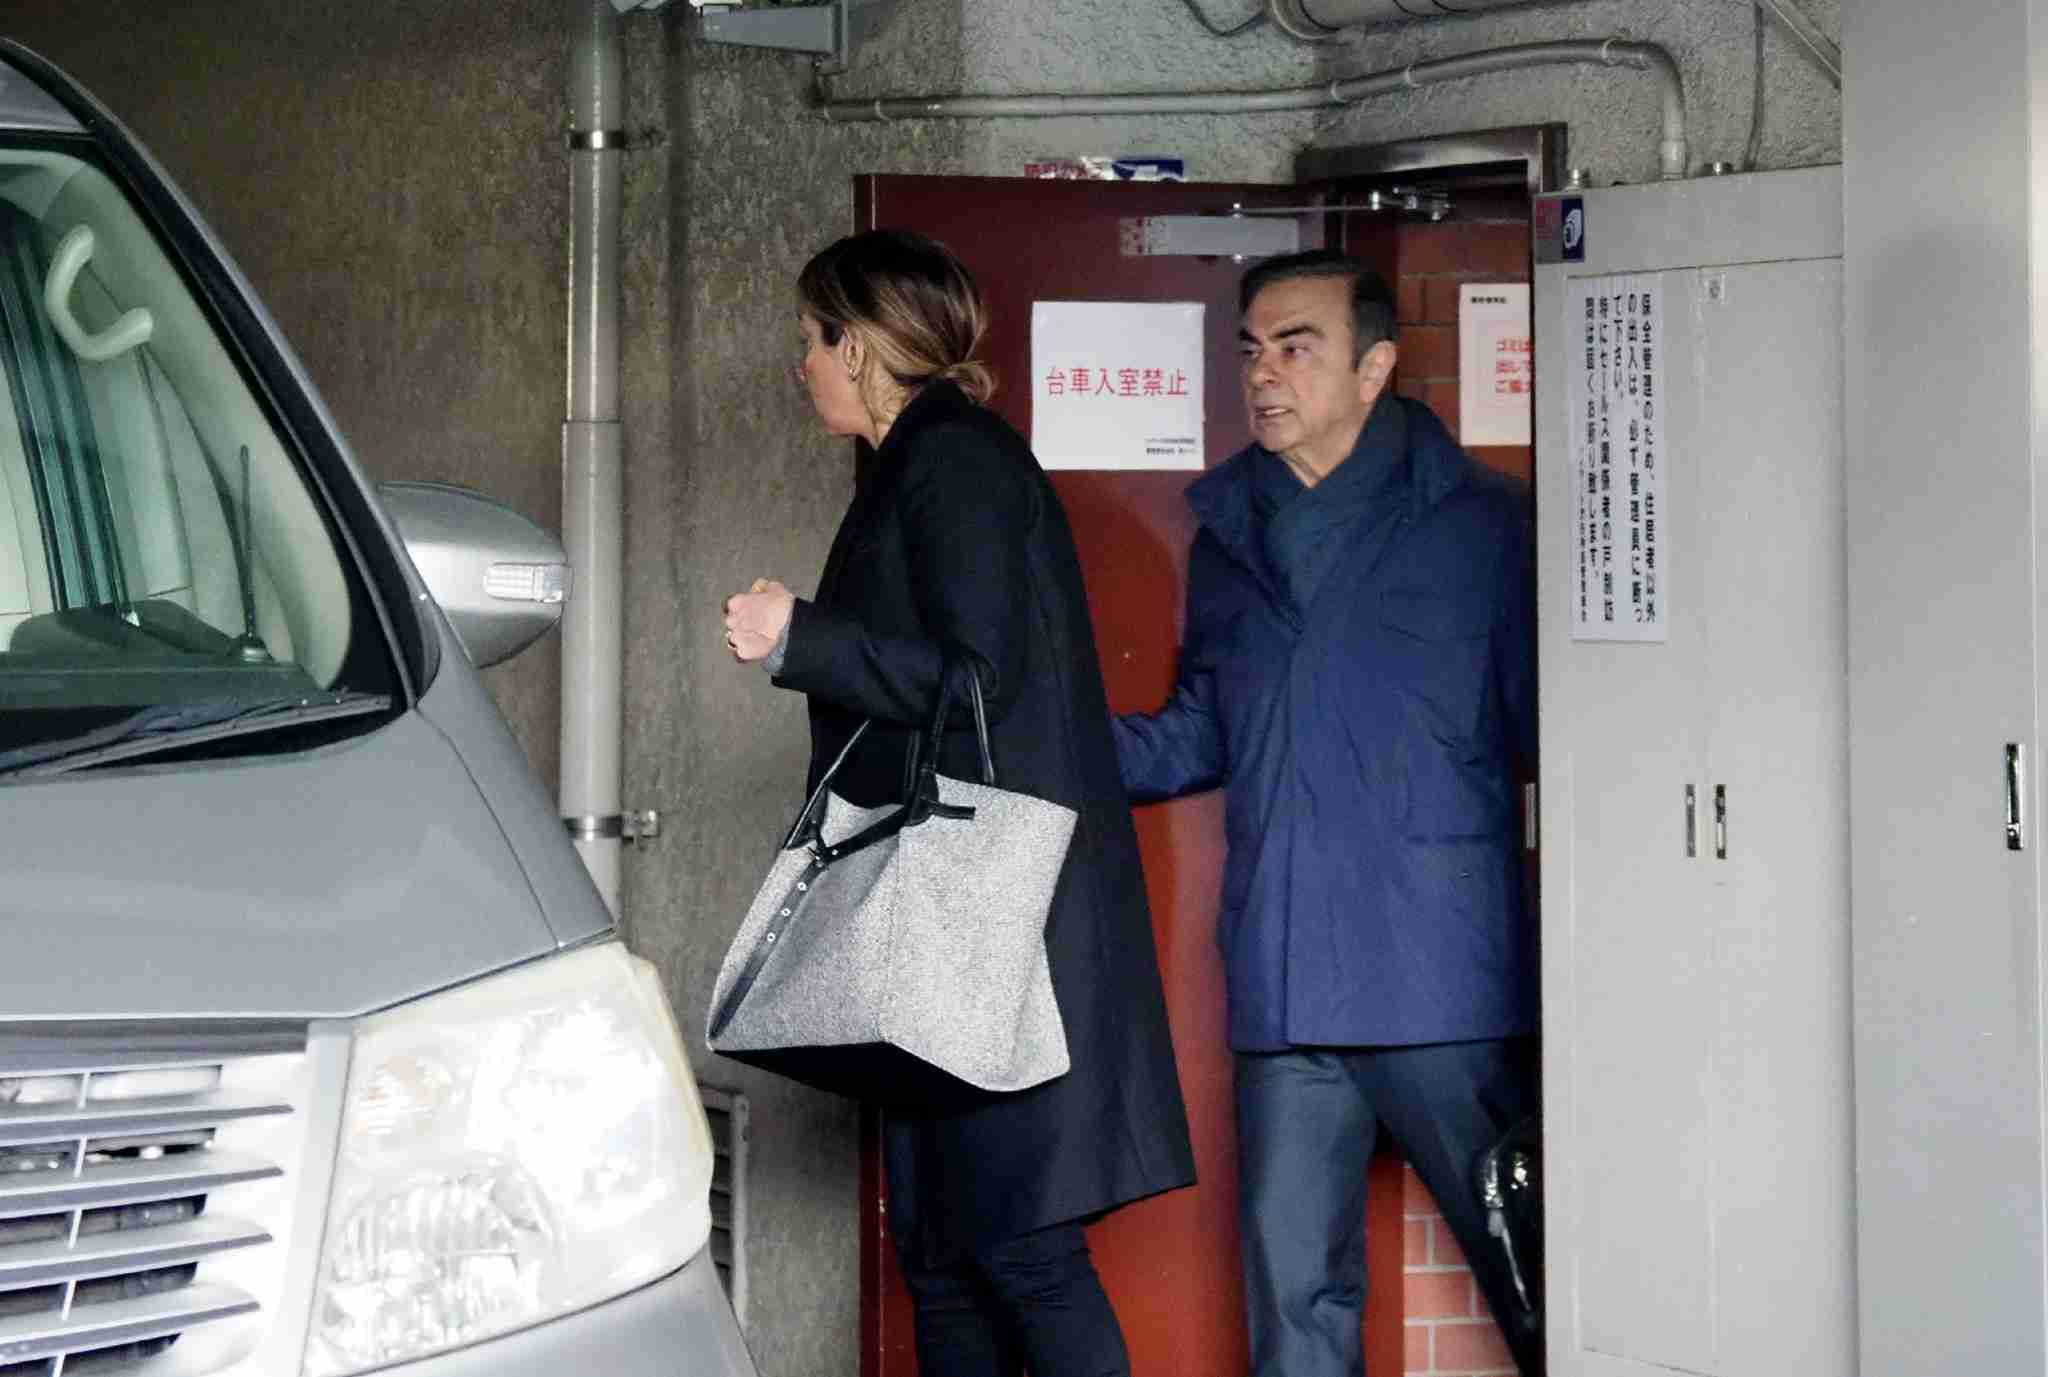 Former Nissan chairman Carlos Ghosn (R) leaves his residence in Tokyo on April 3, 2019. - Ghosn was freed from a Tokyo detention centre on March 6 after his shock arrest on November 19 when Japanese prosecutors stormed into his corporate jet. (Photo by JIJI PRESS / JIJI PRESS / AFP) / Japan OUT (Photo credit should read JIJI PRESS/AFP via Getty Images)